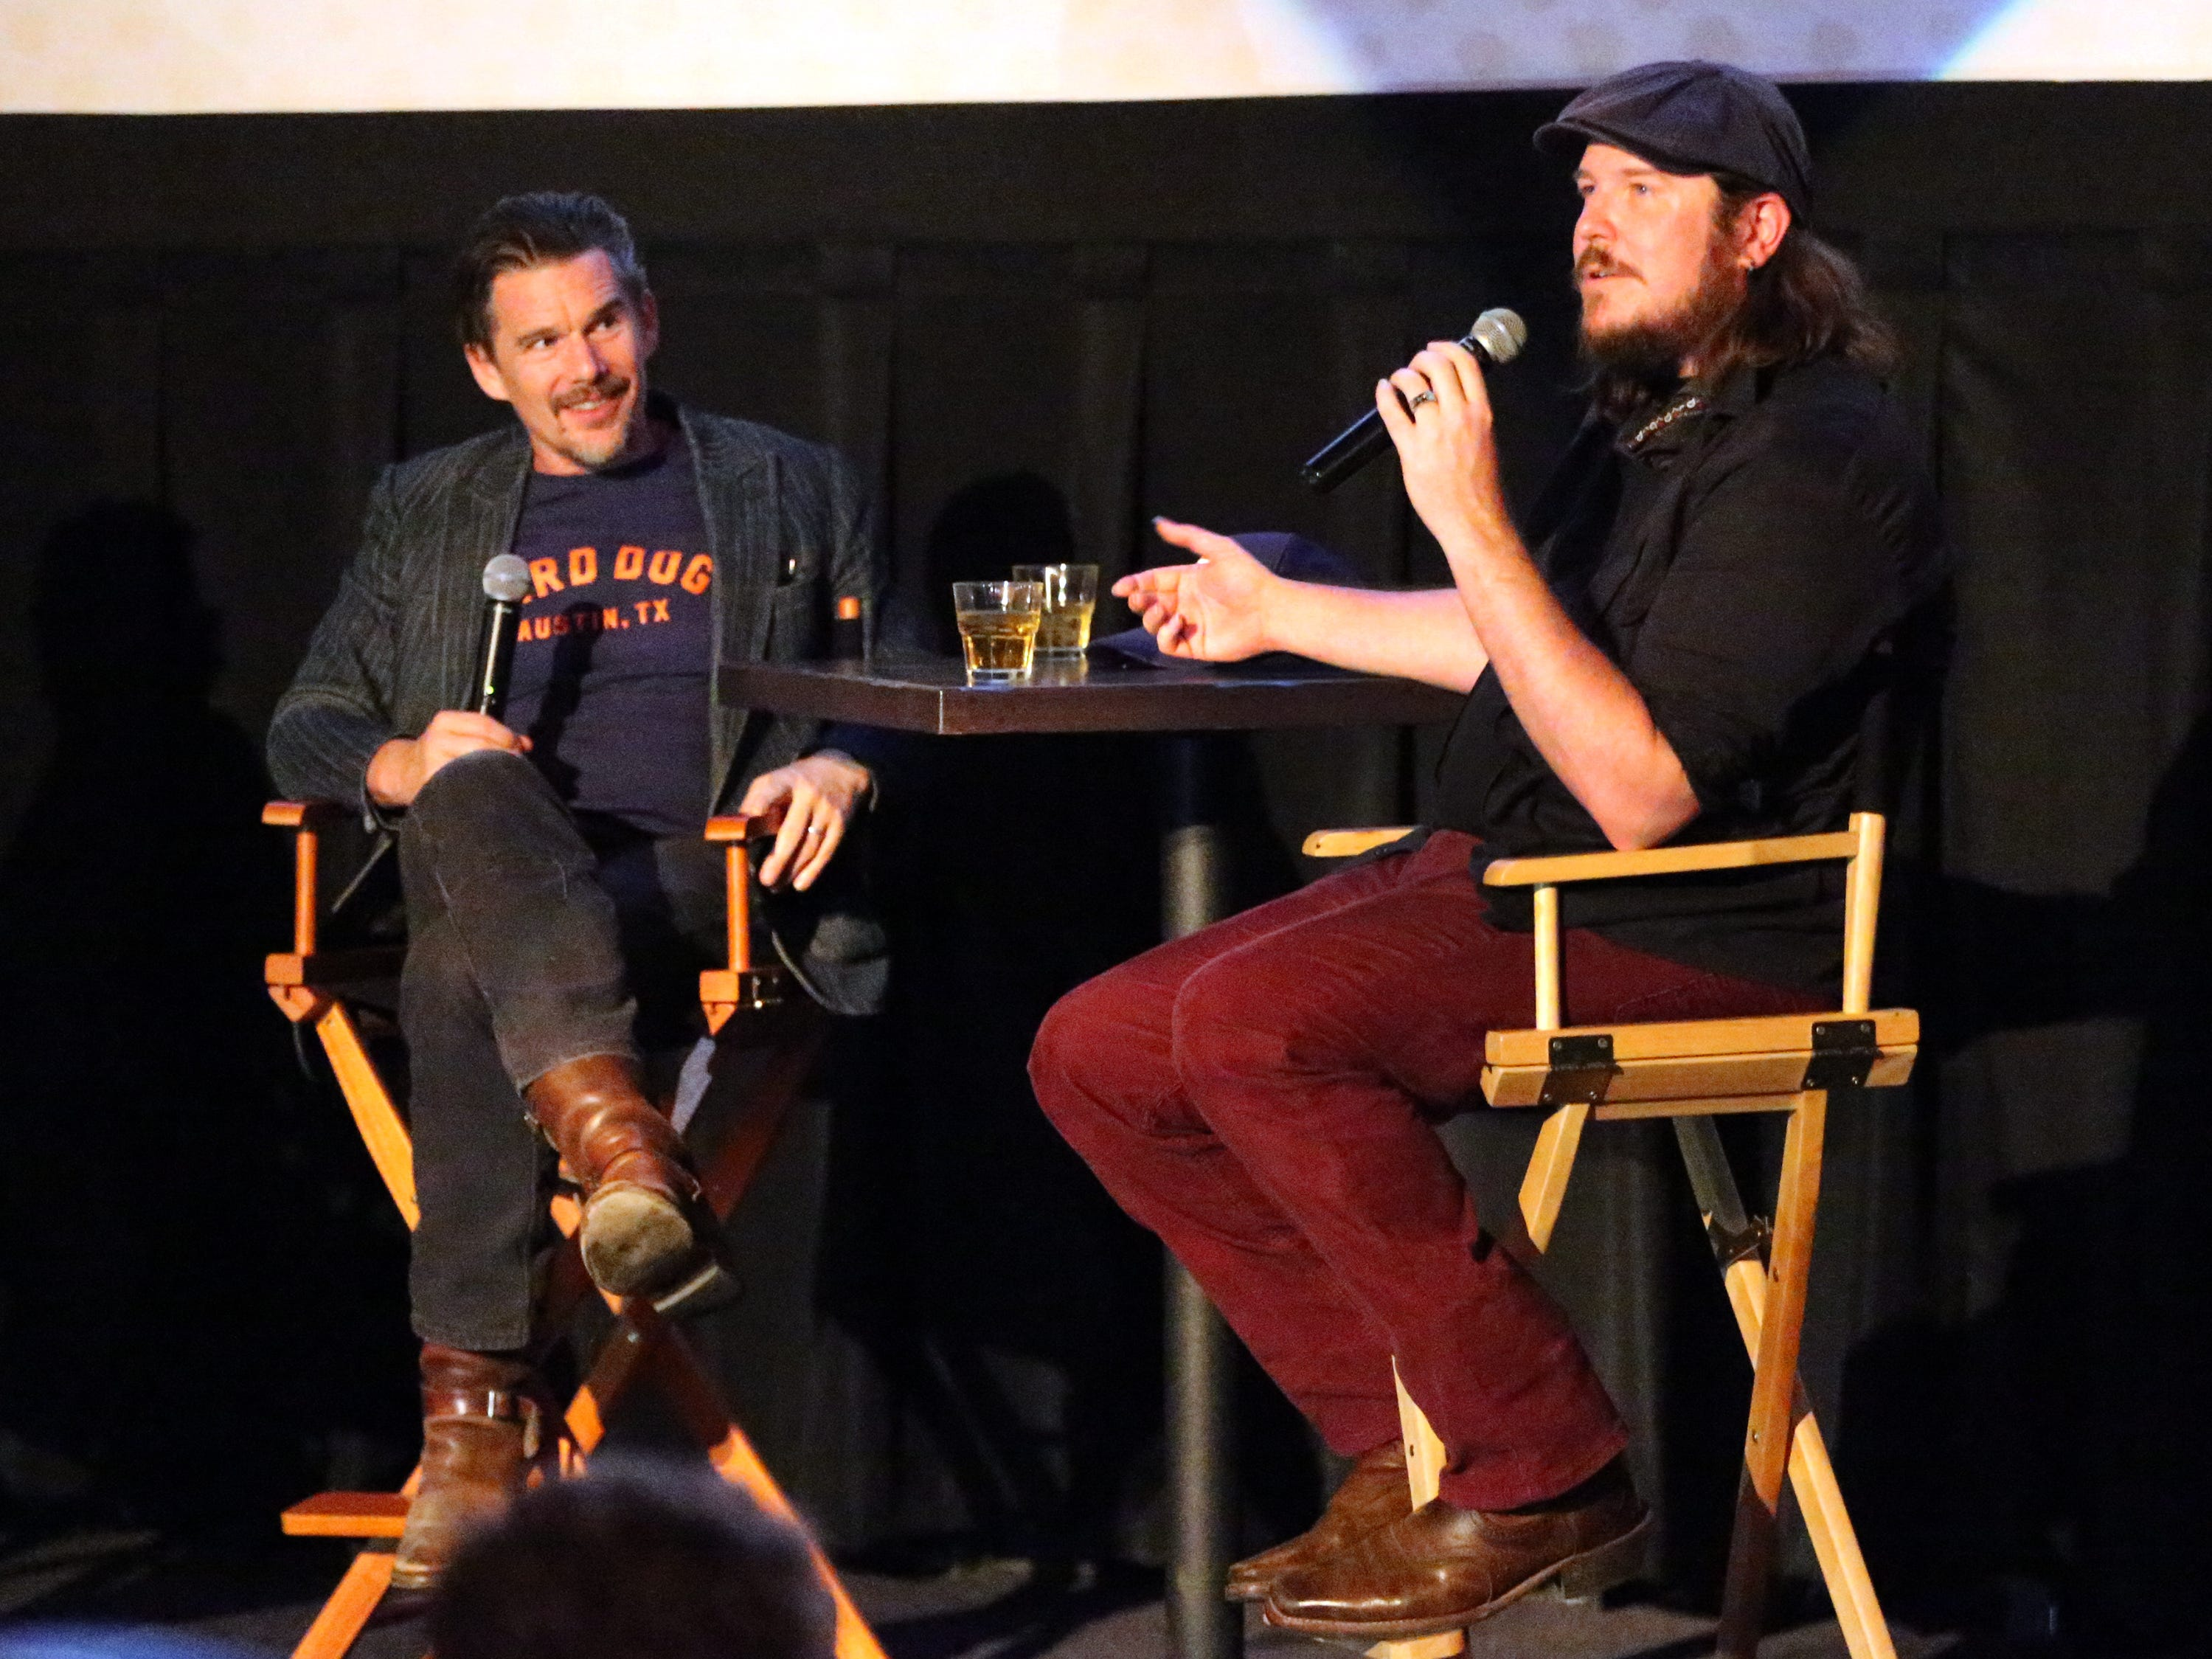 Musician and first-time actor Ben Dickey, right, talks of his starring role in the movie 'Blaze' with actor-director Ethan Hawke, left, following the screening of the movie Tuesday night at Alamo Drafthouse Cinema.